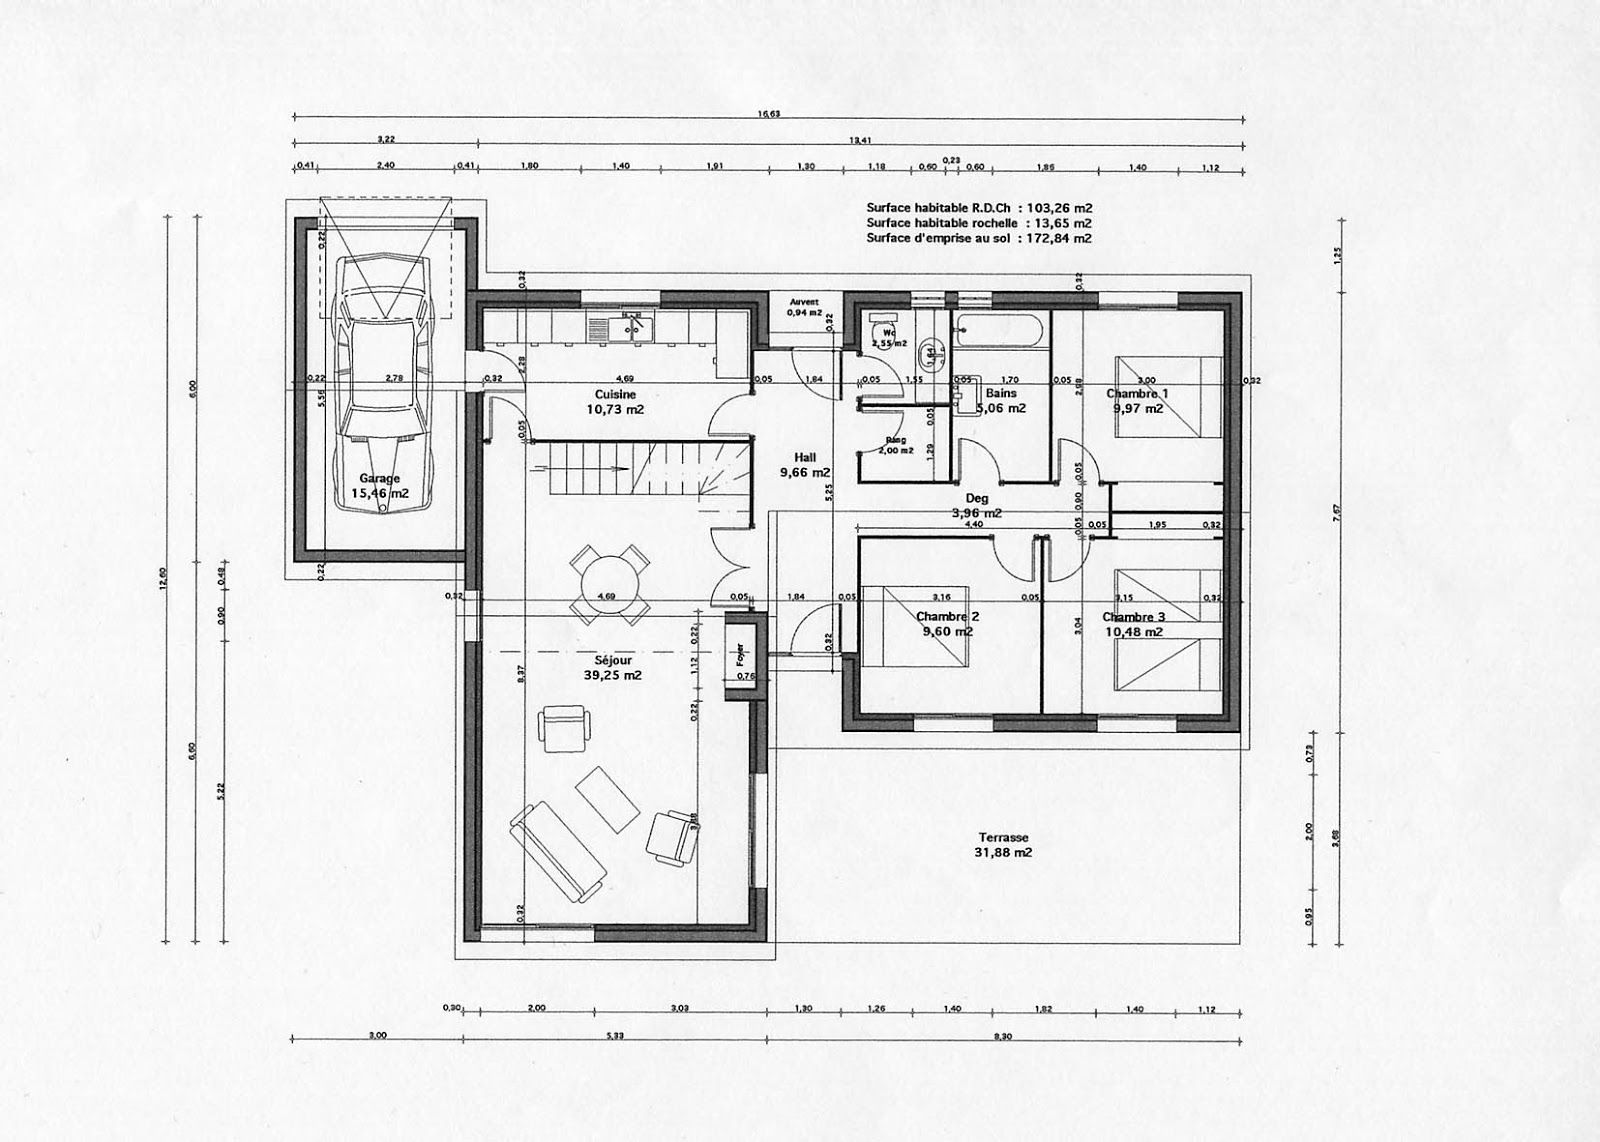 Plan Maison Gratuit En Ligne How To Plan House Plans Architect Design